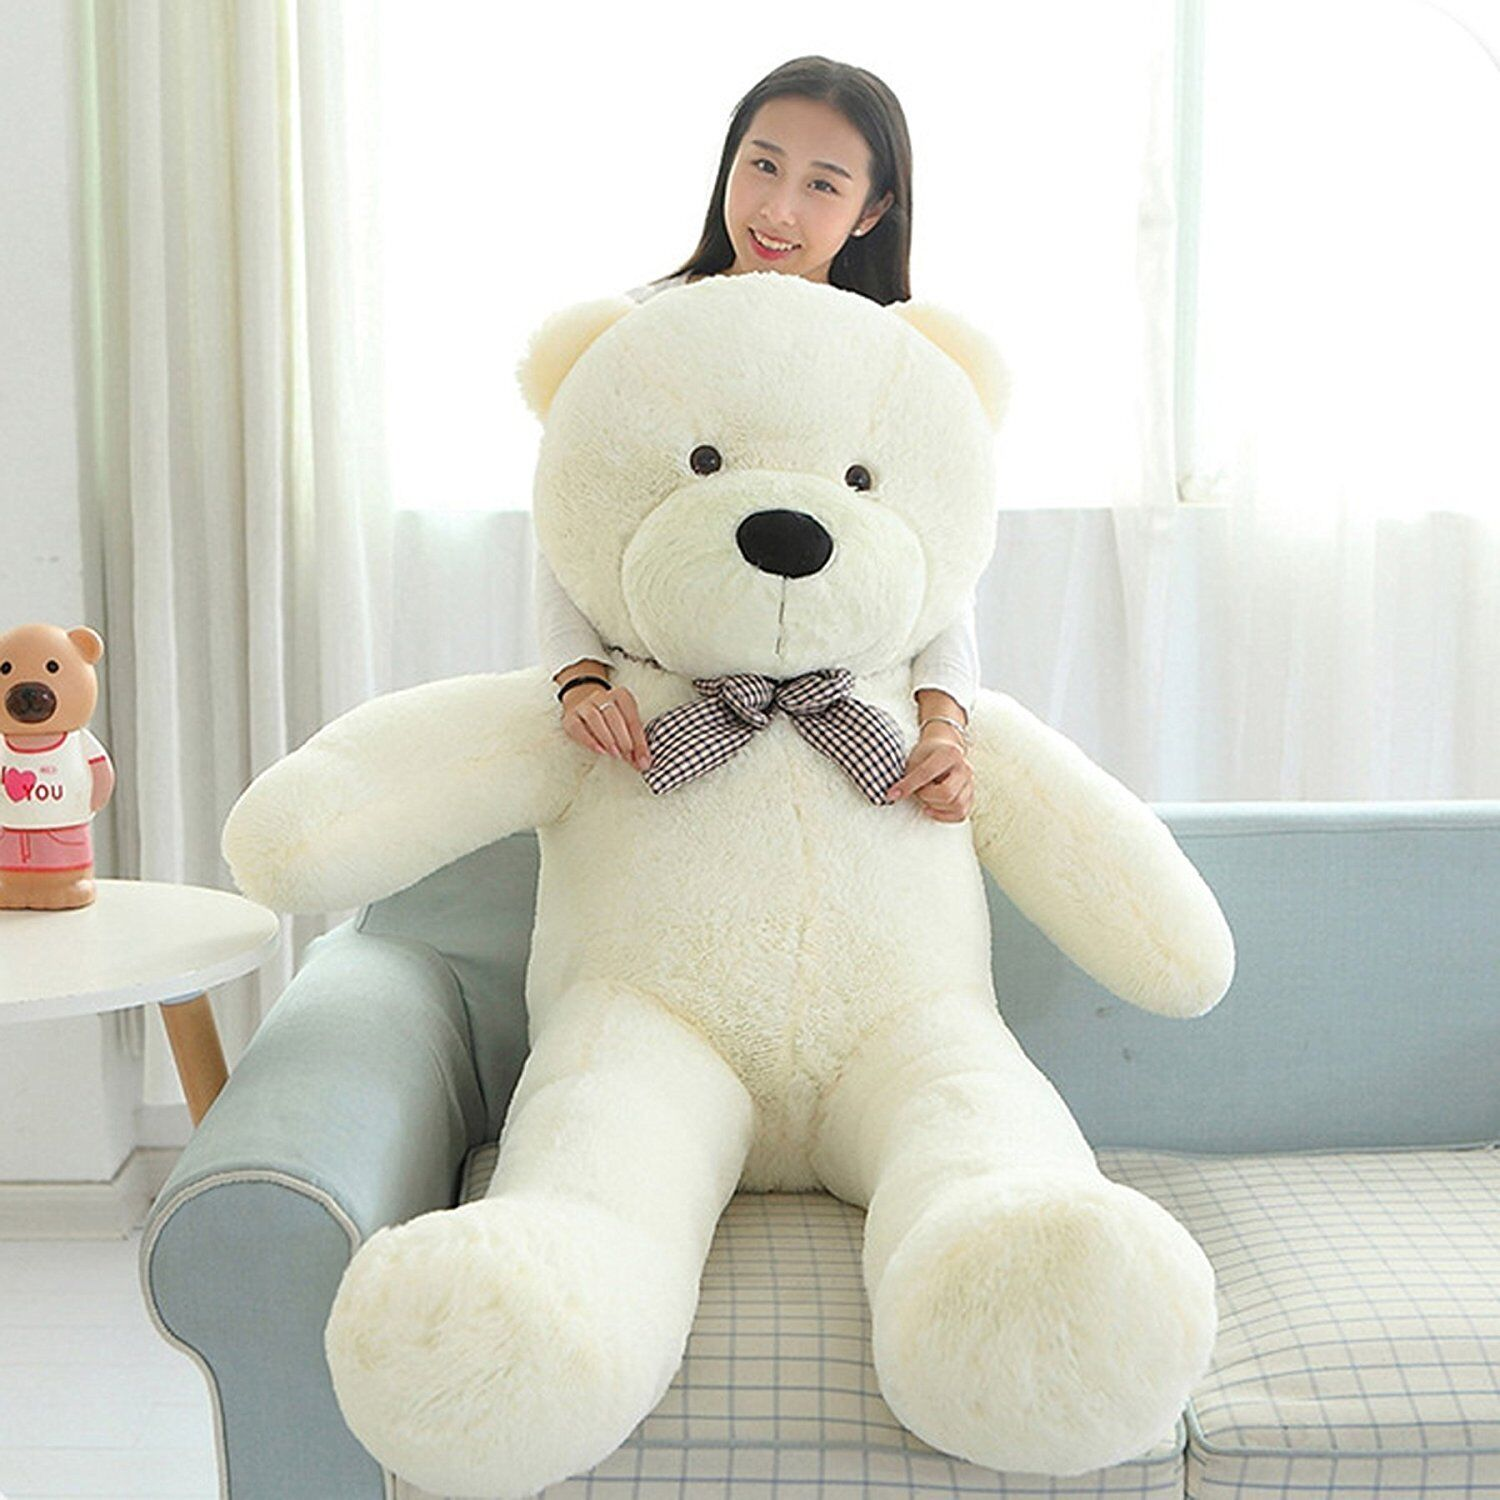 47/'/' Giant White Teddy Bear Big Stuffed Animal Huge Kid LARGE Soft Plush Toy New